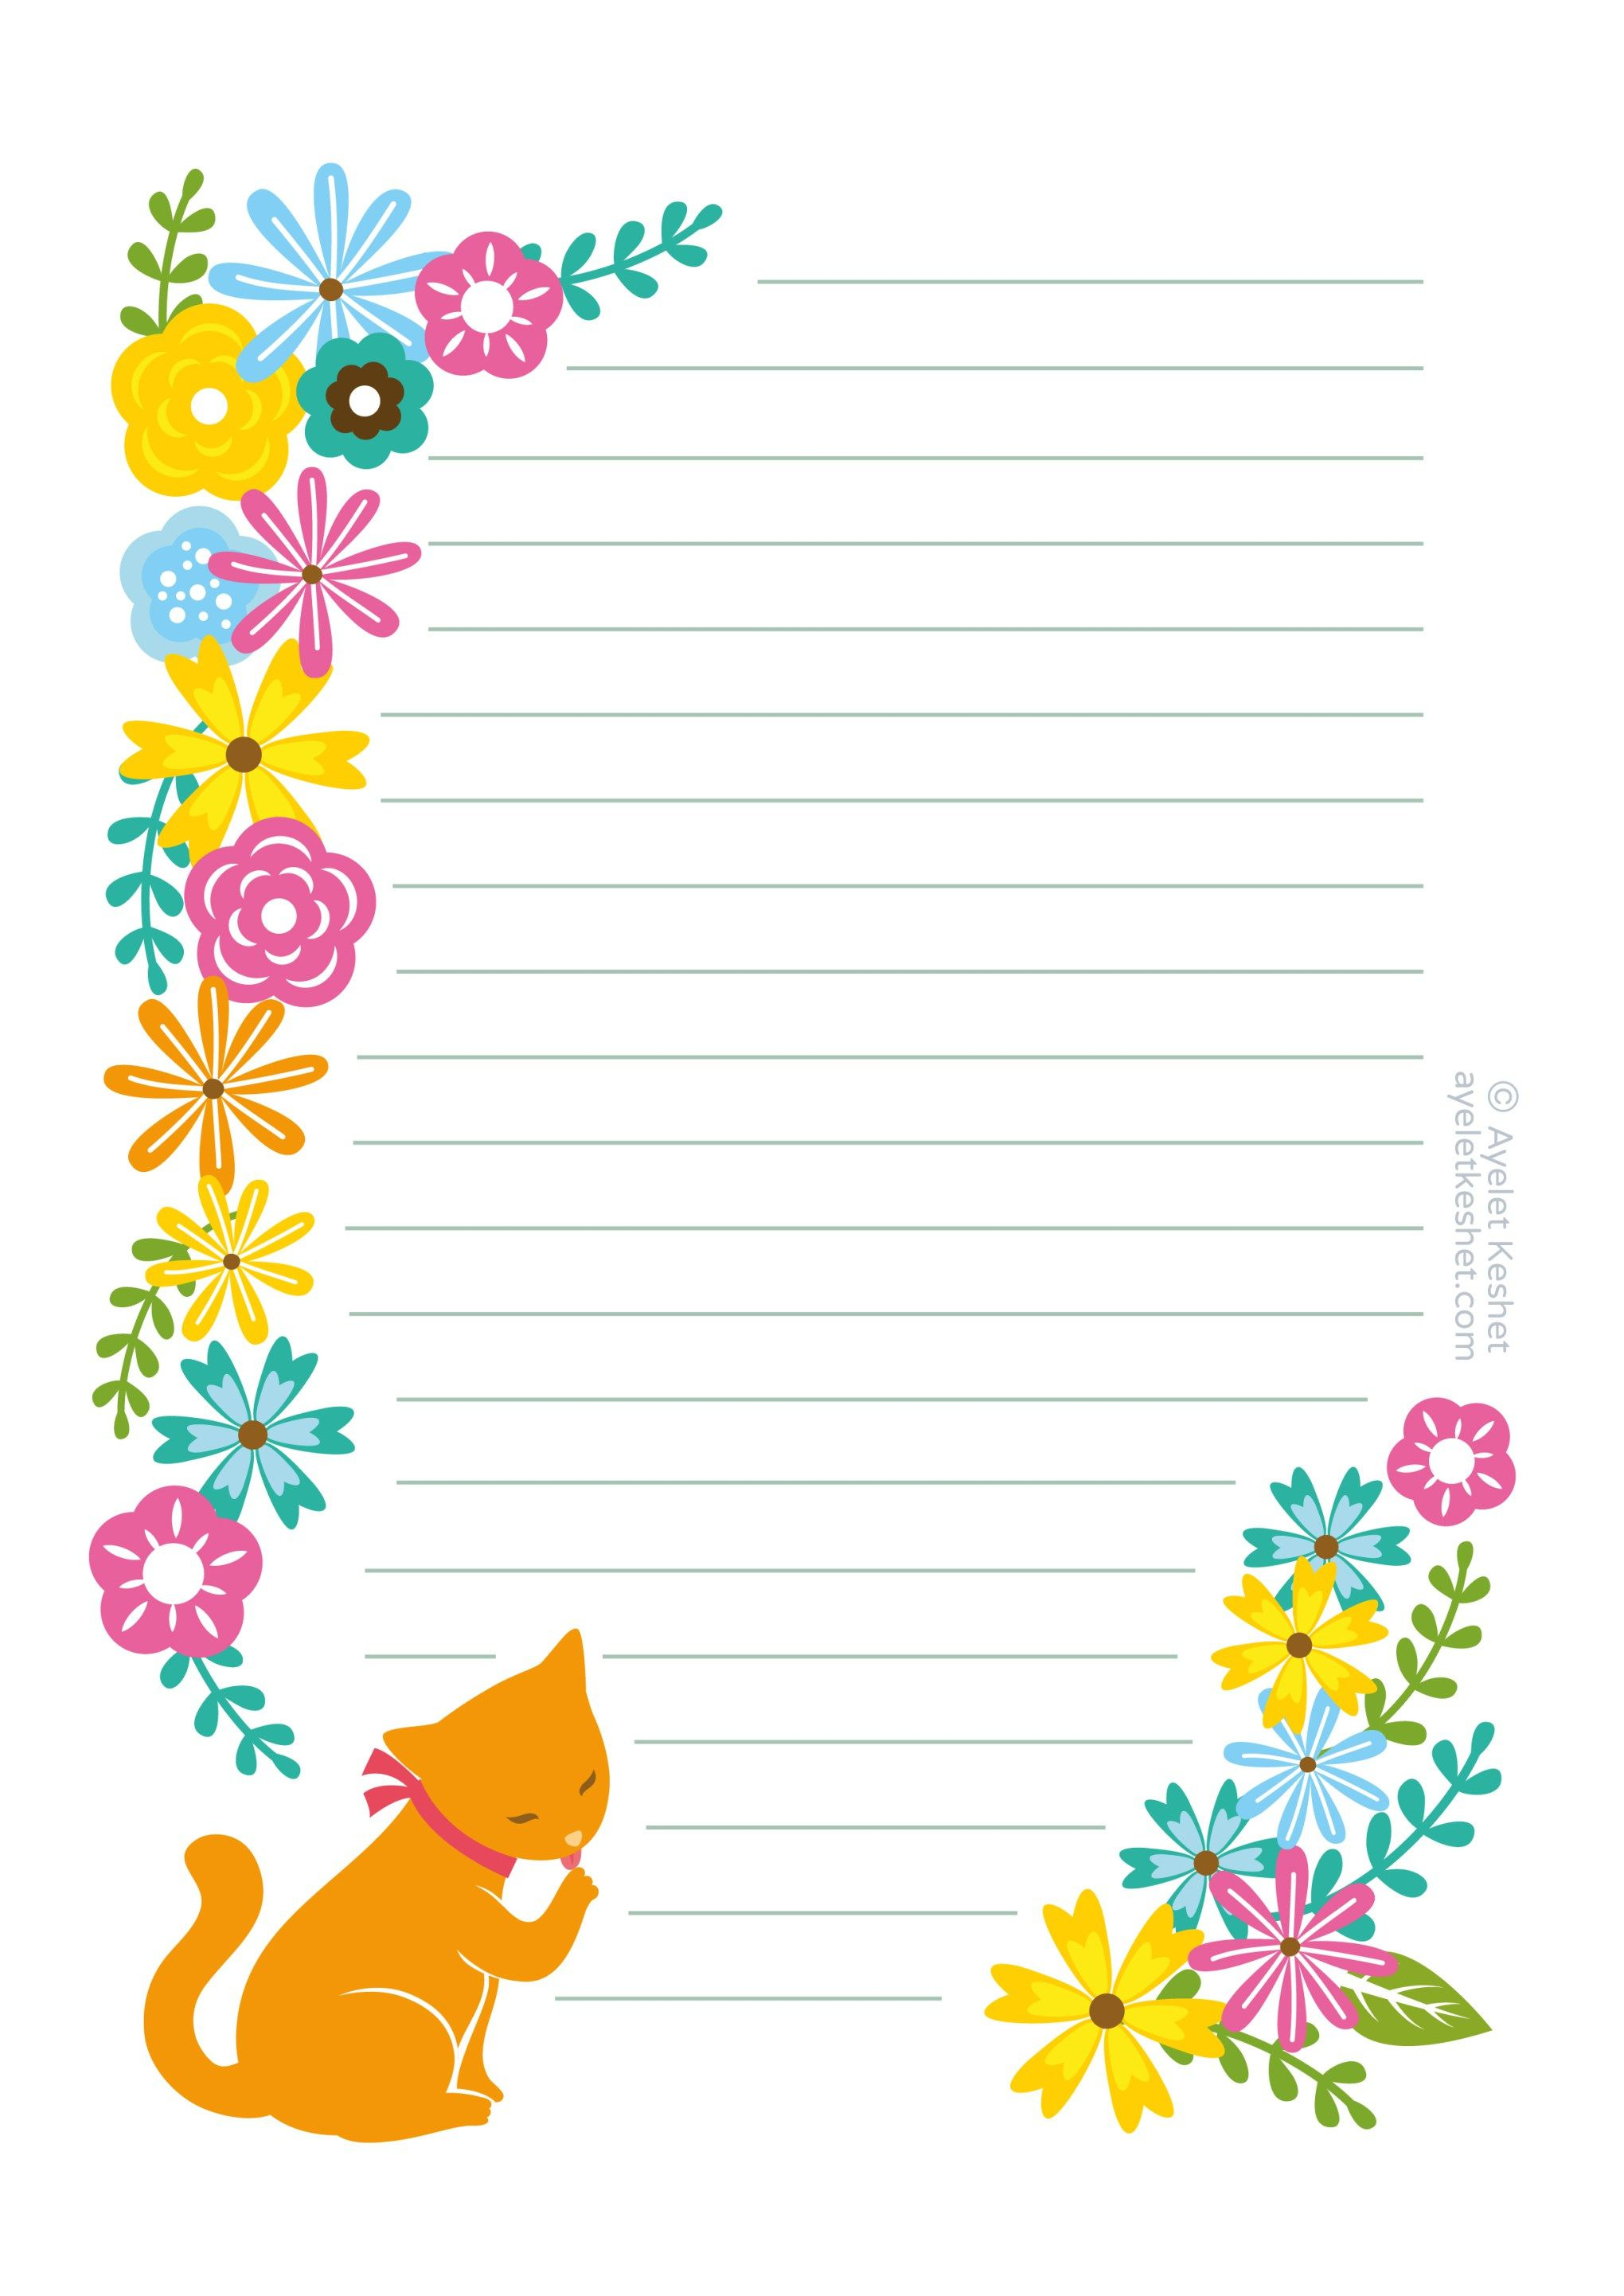 Free Printable Letter Paper | Printables To Go | Pinterest - Free Printable Stationery Paper